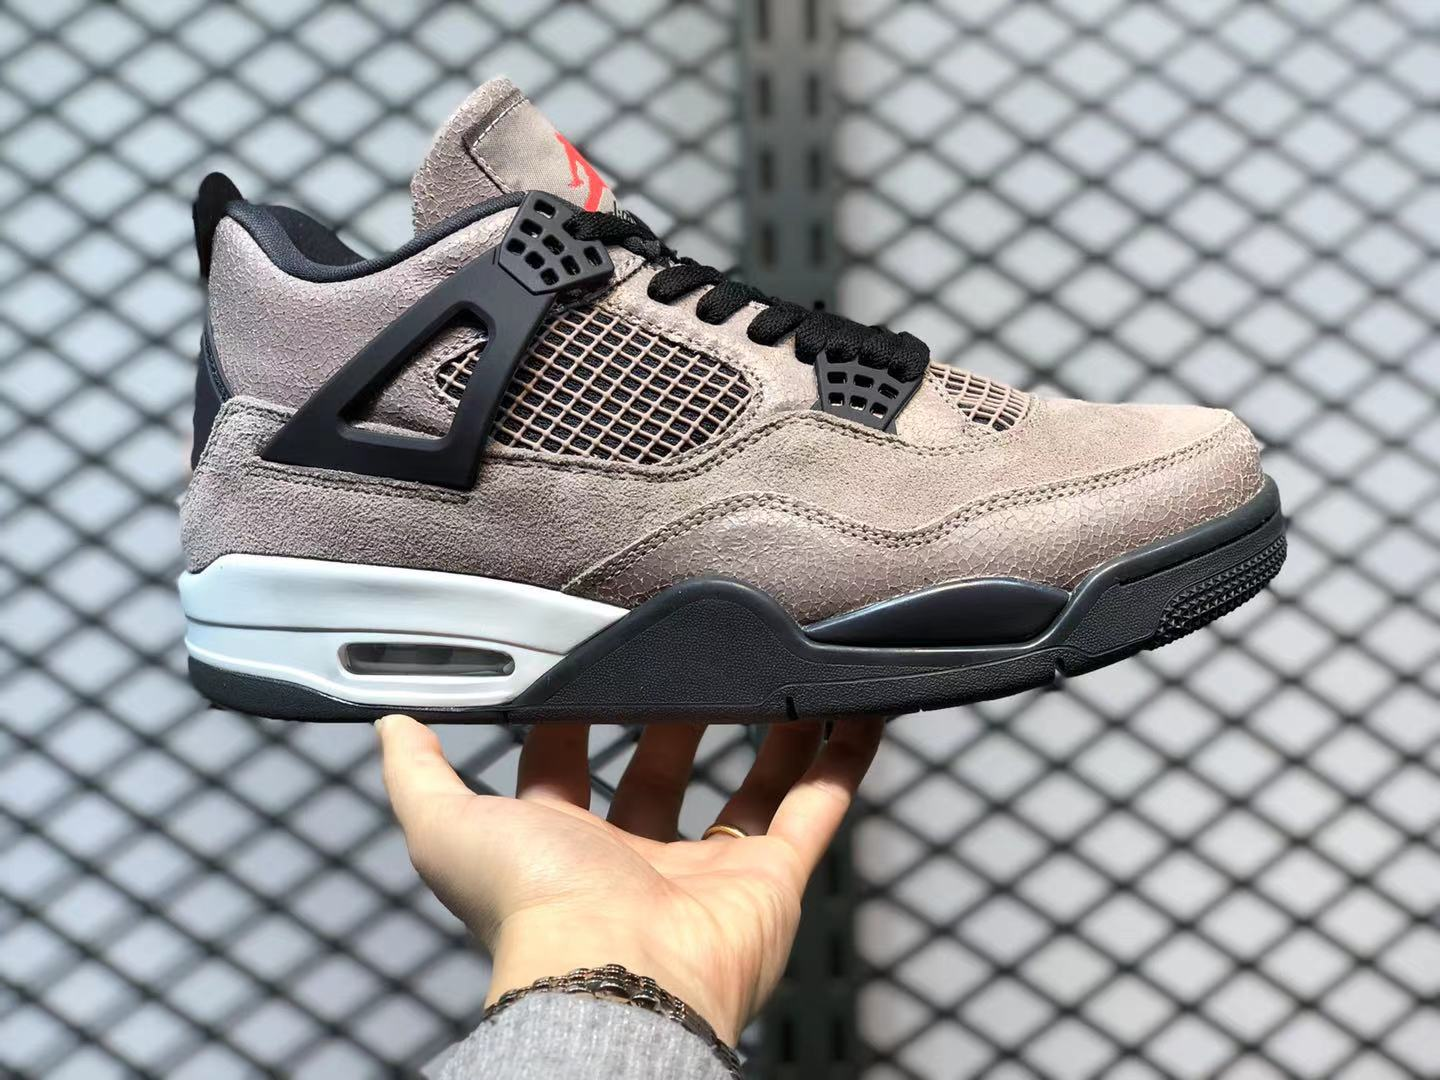 Air Jordan 4 Taupe Haze Oil Grey Off White Infrared 23 For Sale